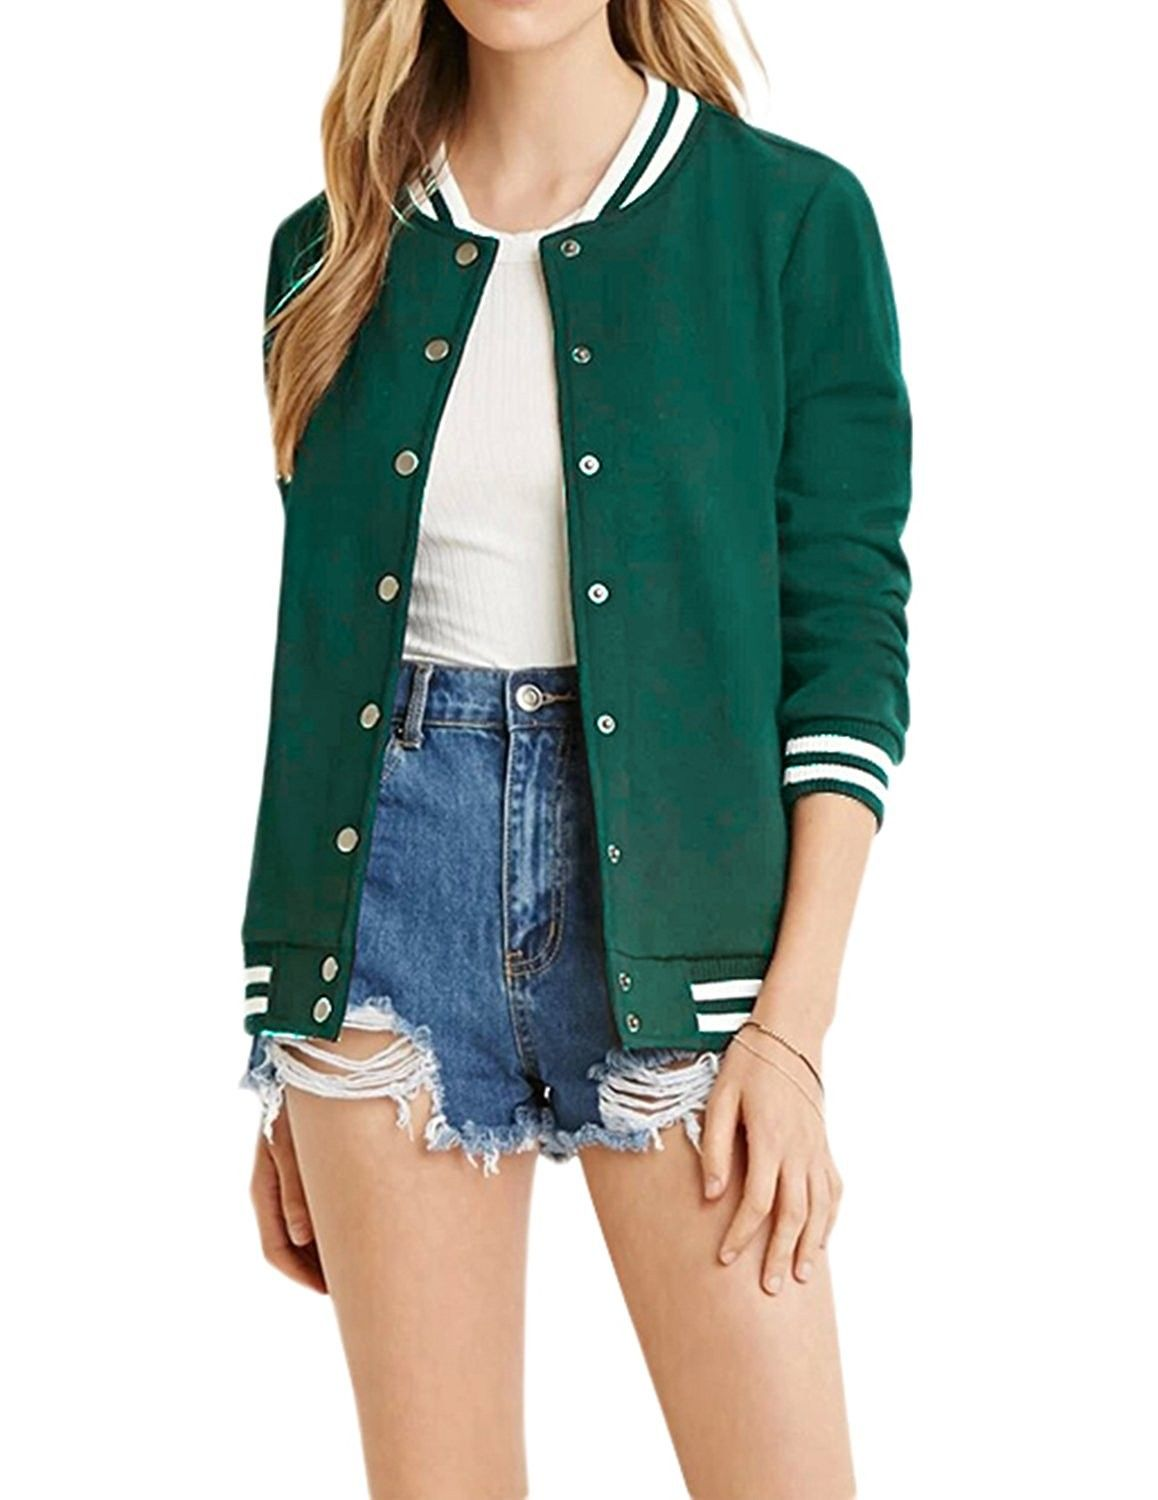 Women S Clothing Coats Jackets Vests Casual Jackets Women S Varsity Ribbed Color Block Long S Jacket Outfit Women Baseball Jacket Women Clothes For Women